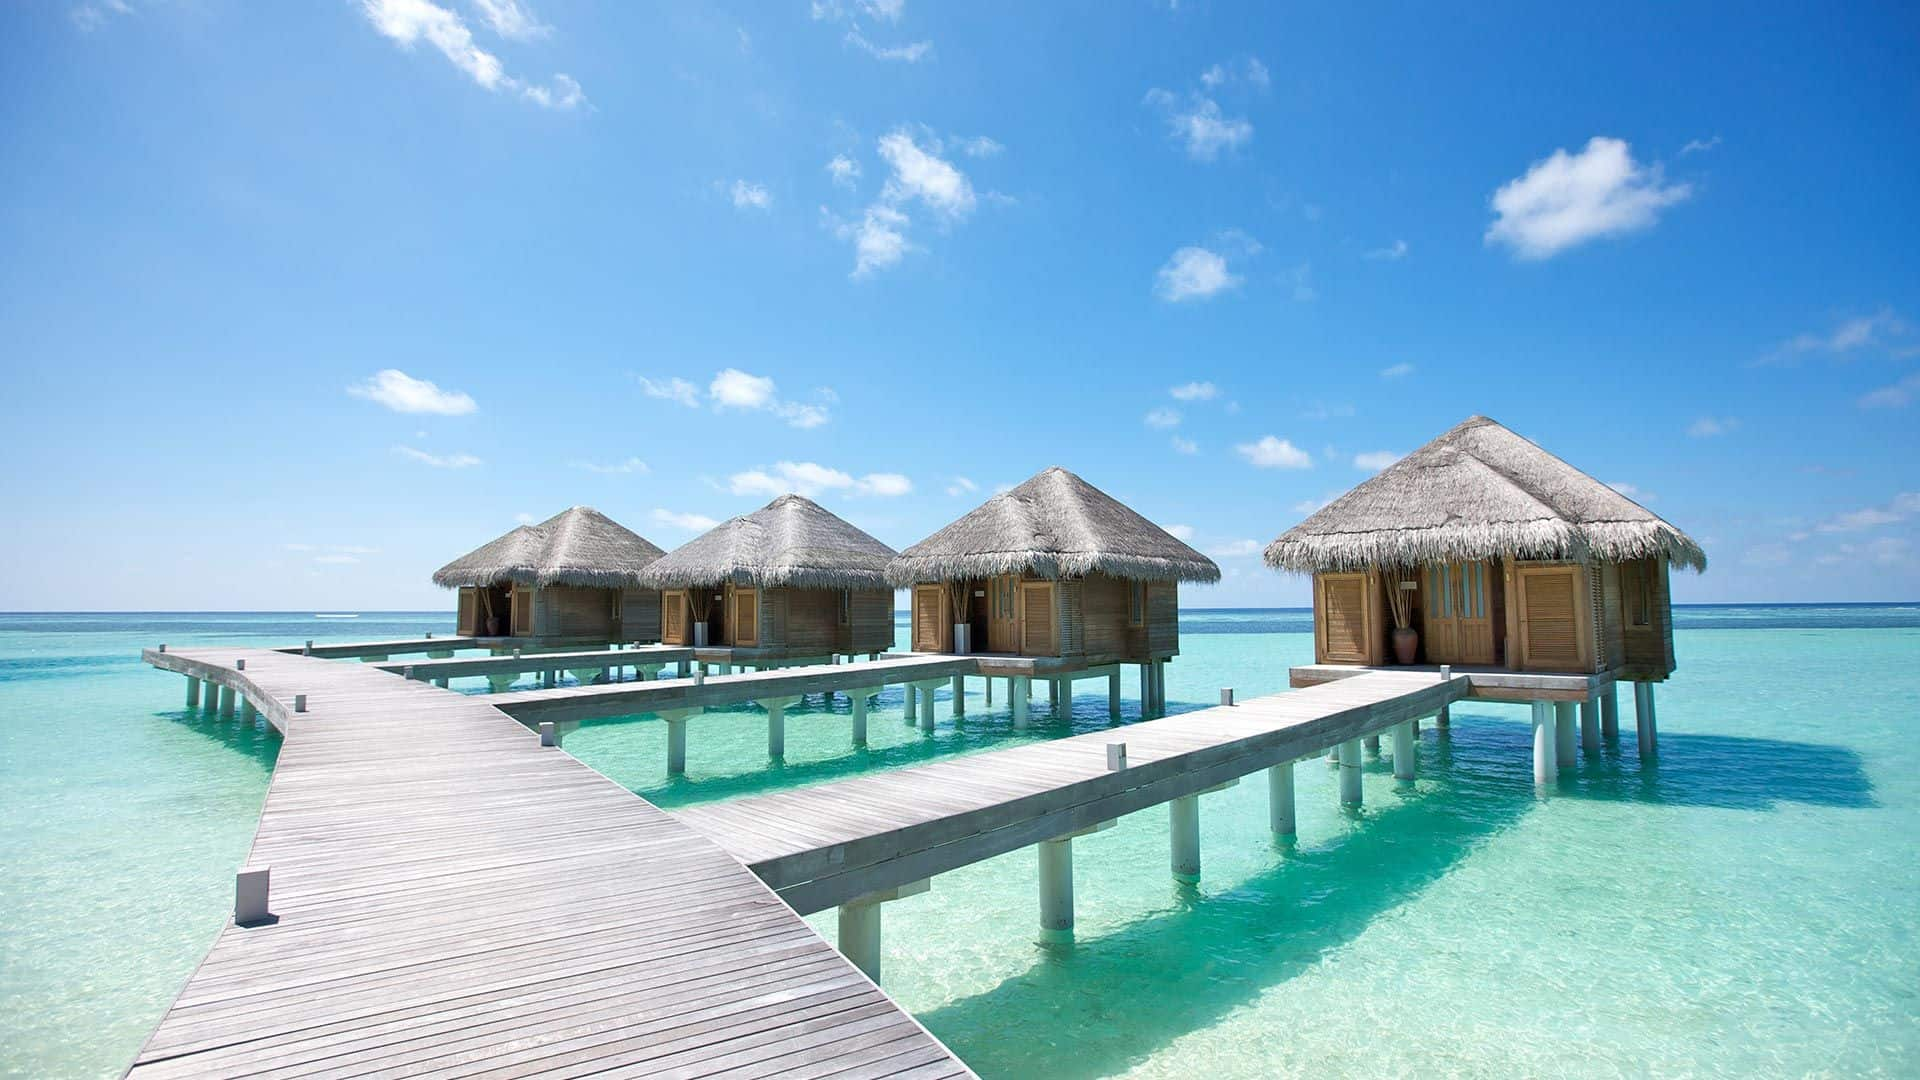 LUX South Ari Atoll Overwater Bungalow